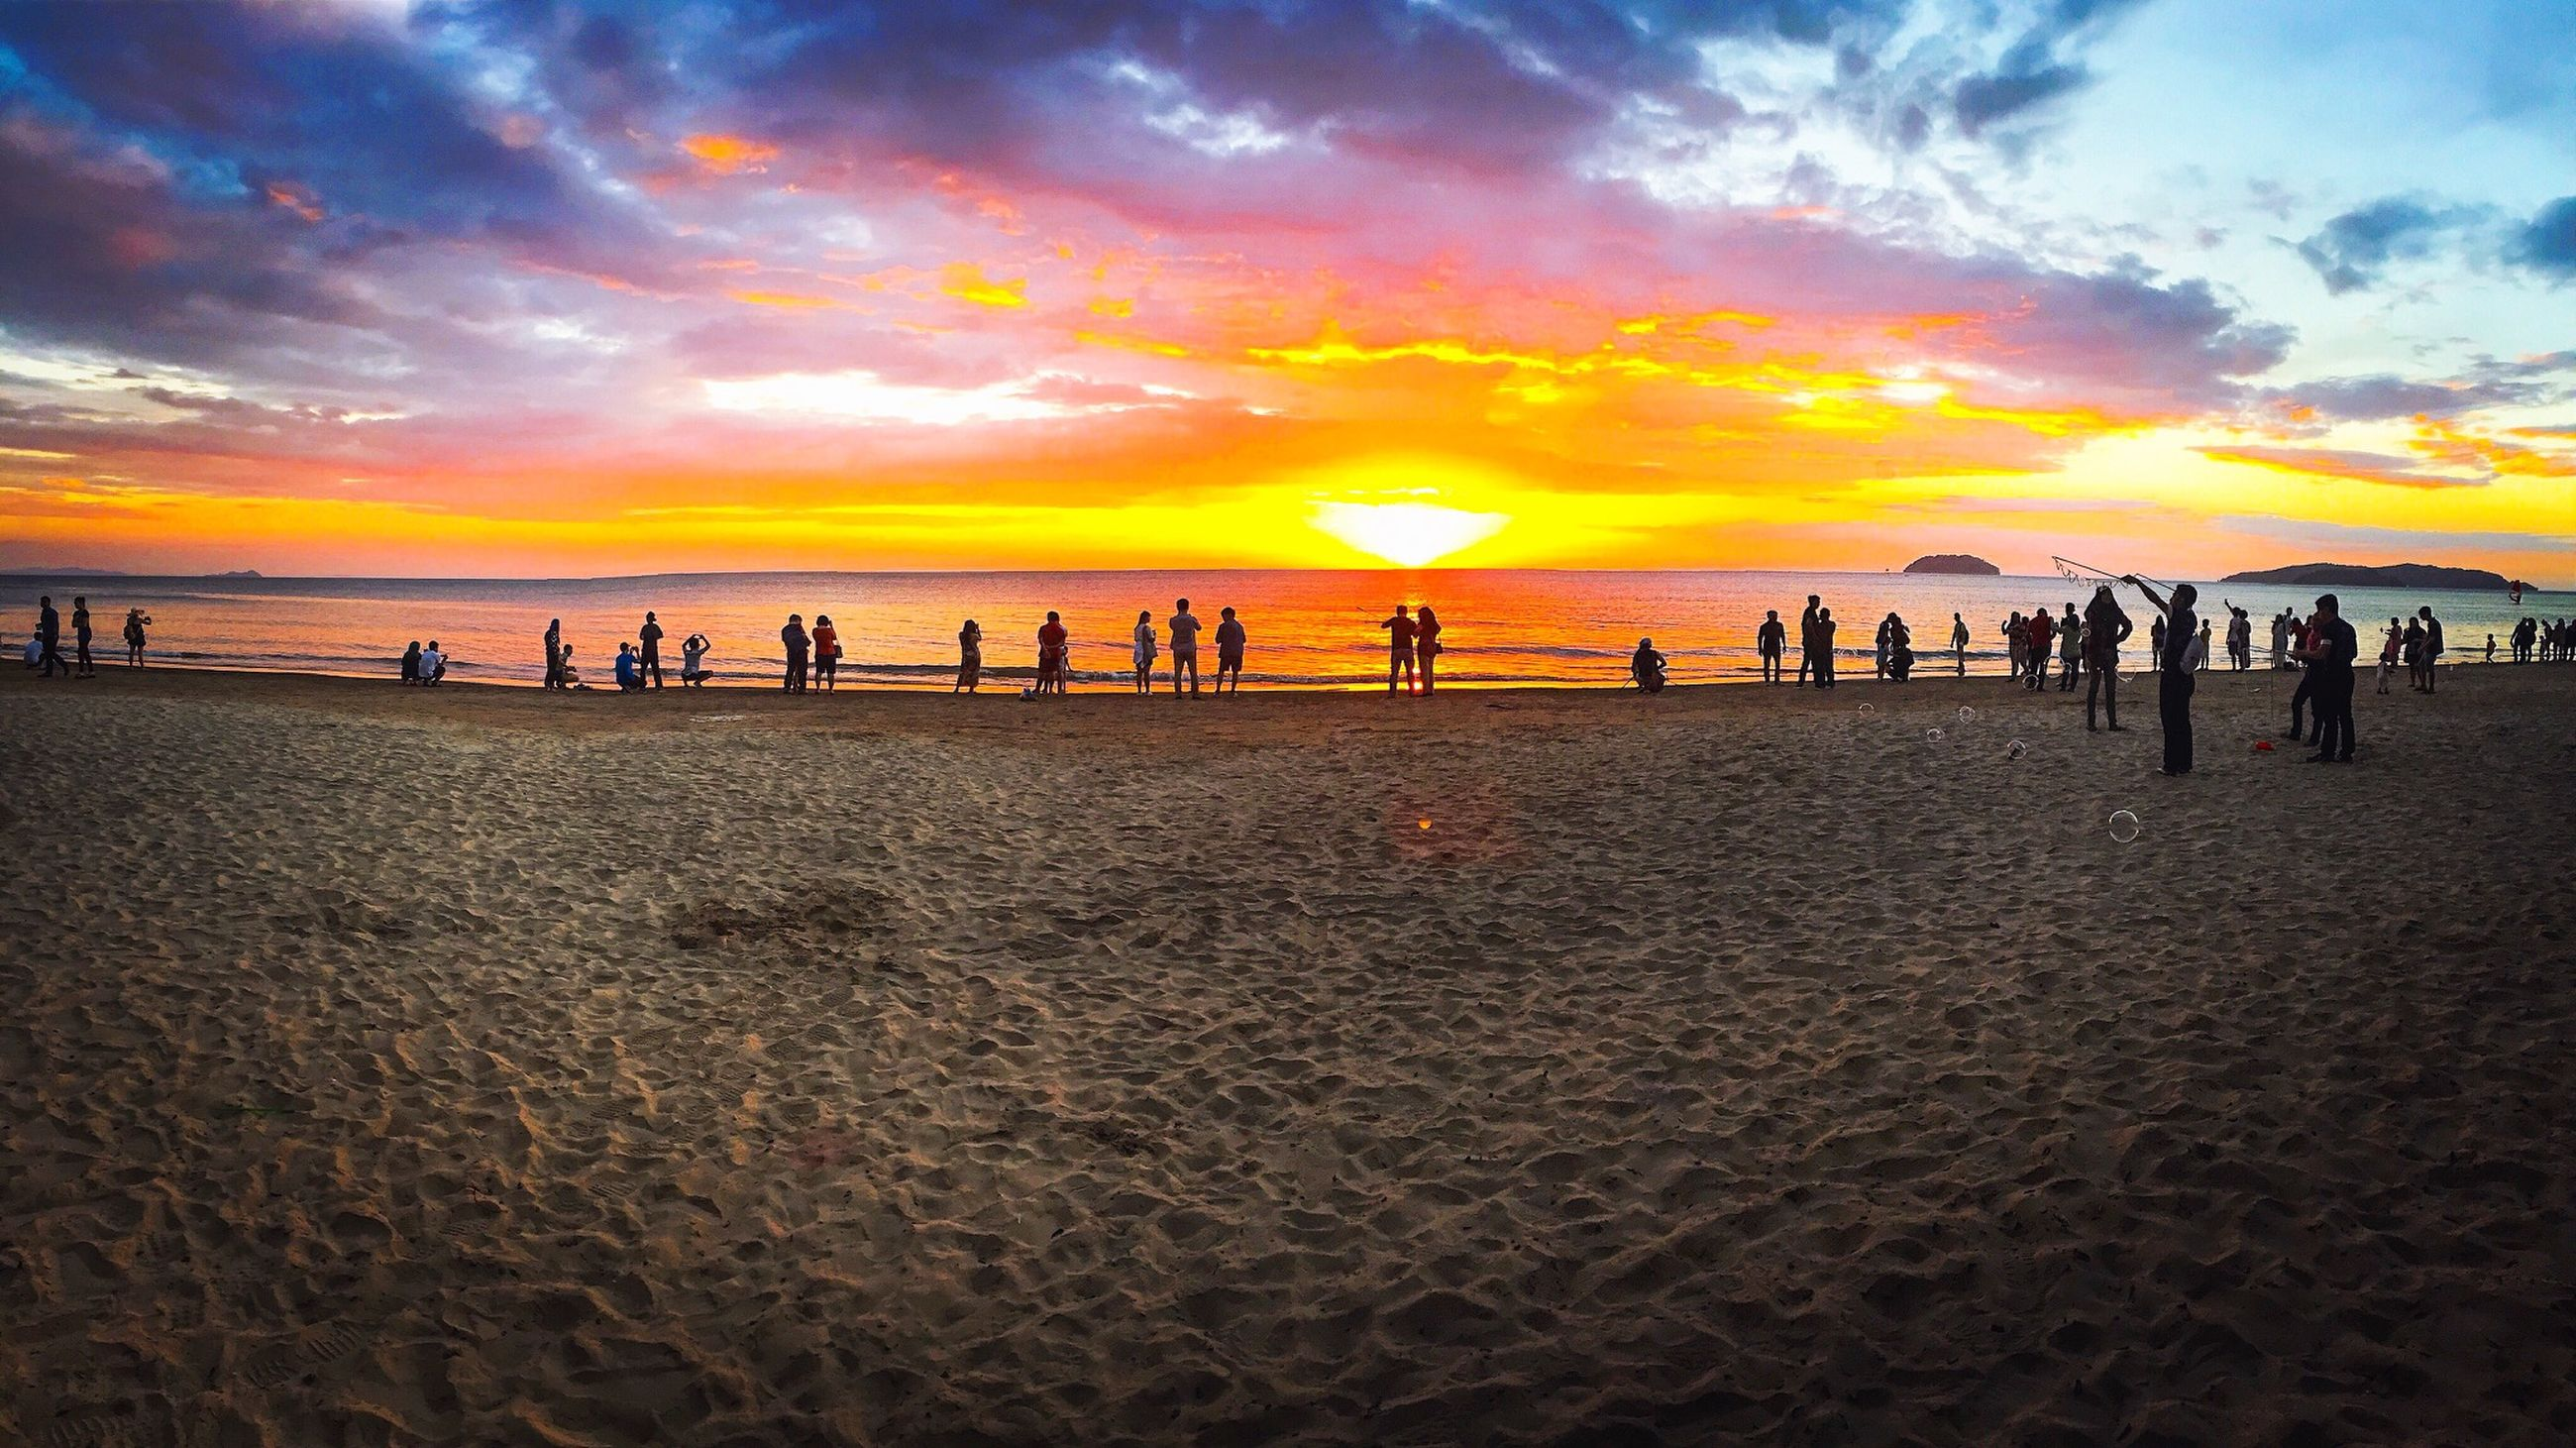 sea, sunset, beach, water, horizon over water, sky, scenics, beauty in nature, shore, tranquil scene, orange color, sand, tranquility, idyllic, cloud - sky, nature, vacations, large group of people, incidental people, tourism